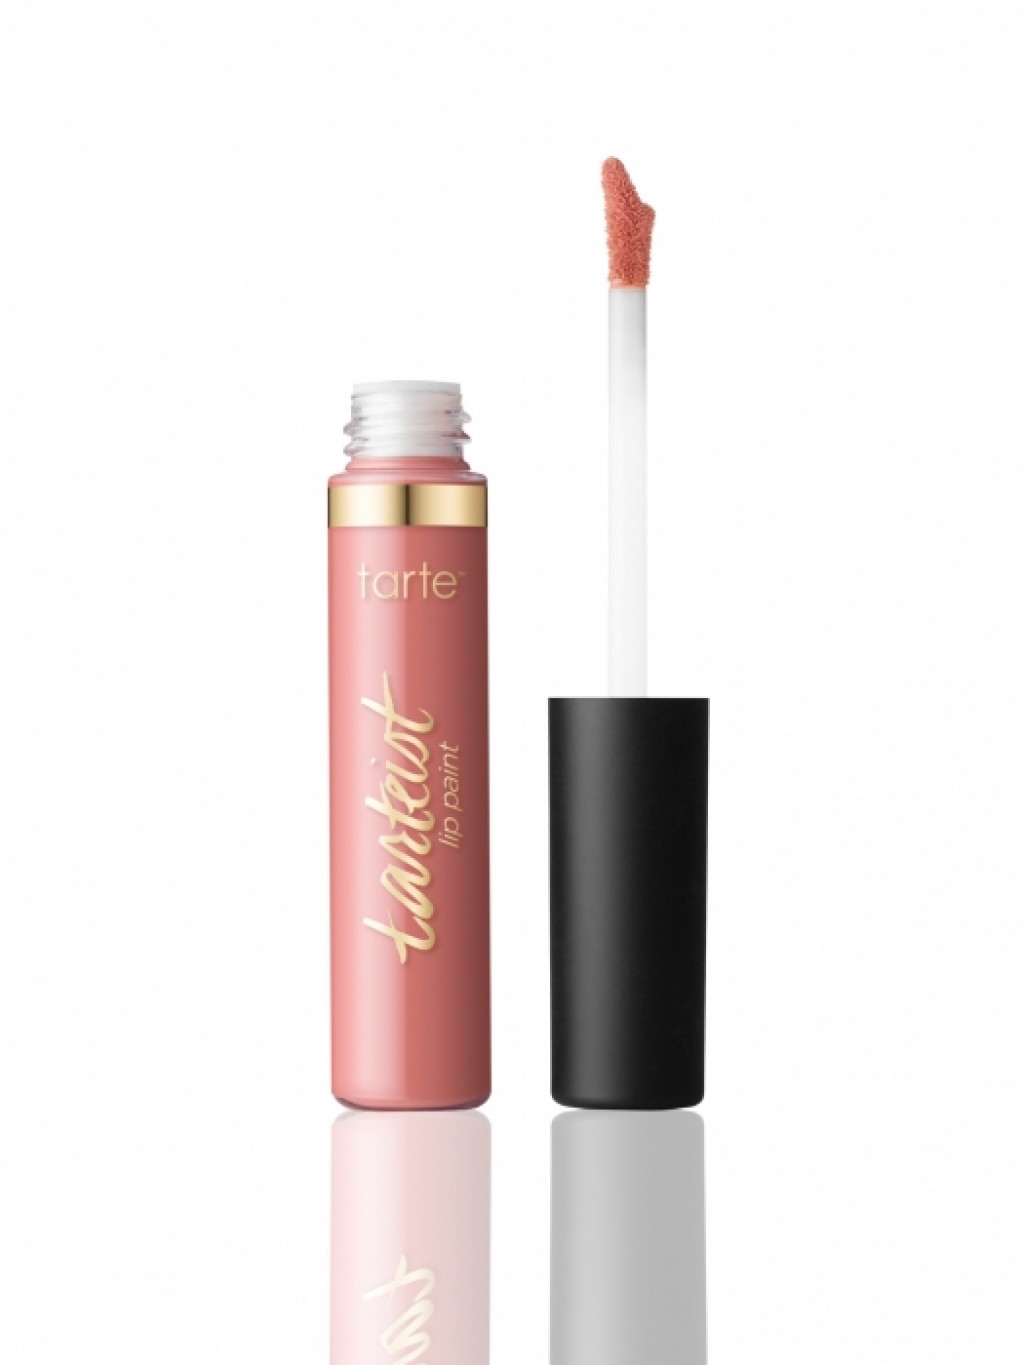 Tarteist Quick Dry Lip Paint Makeup Beautyalmanac